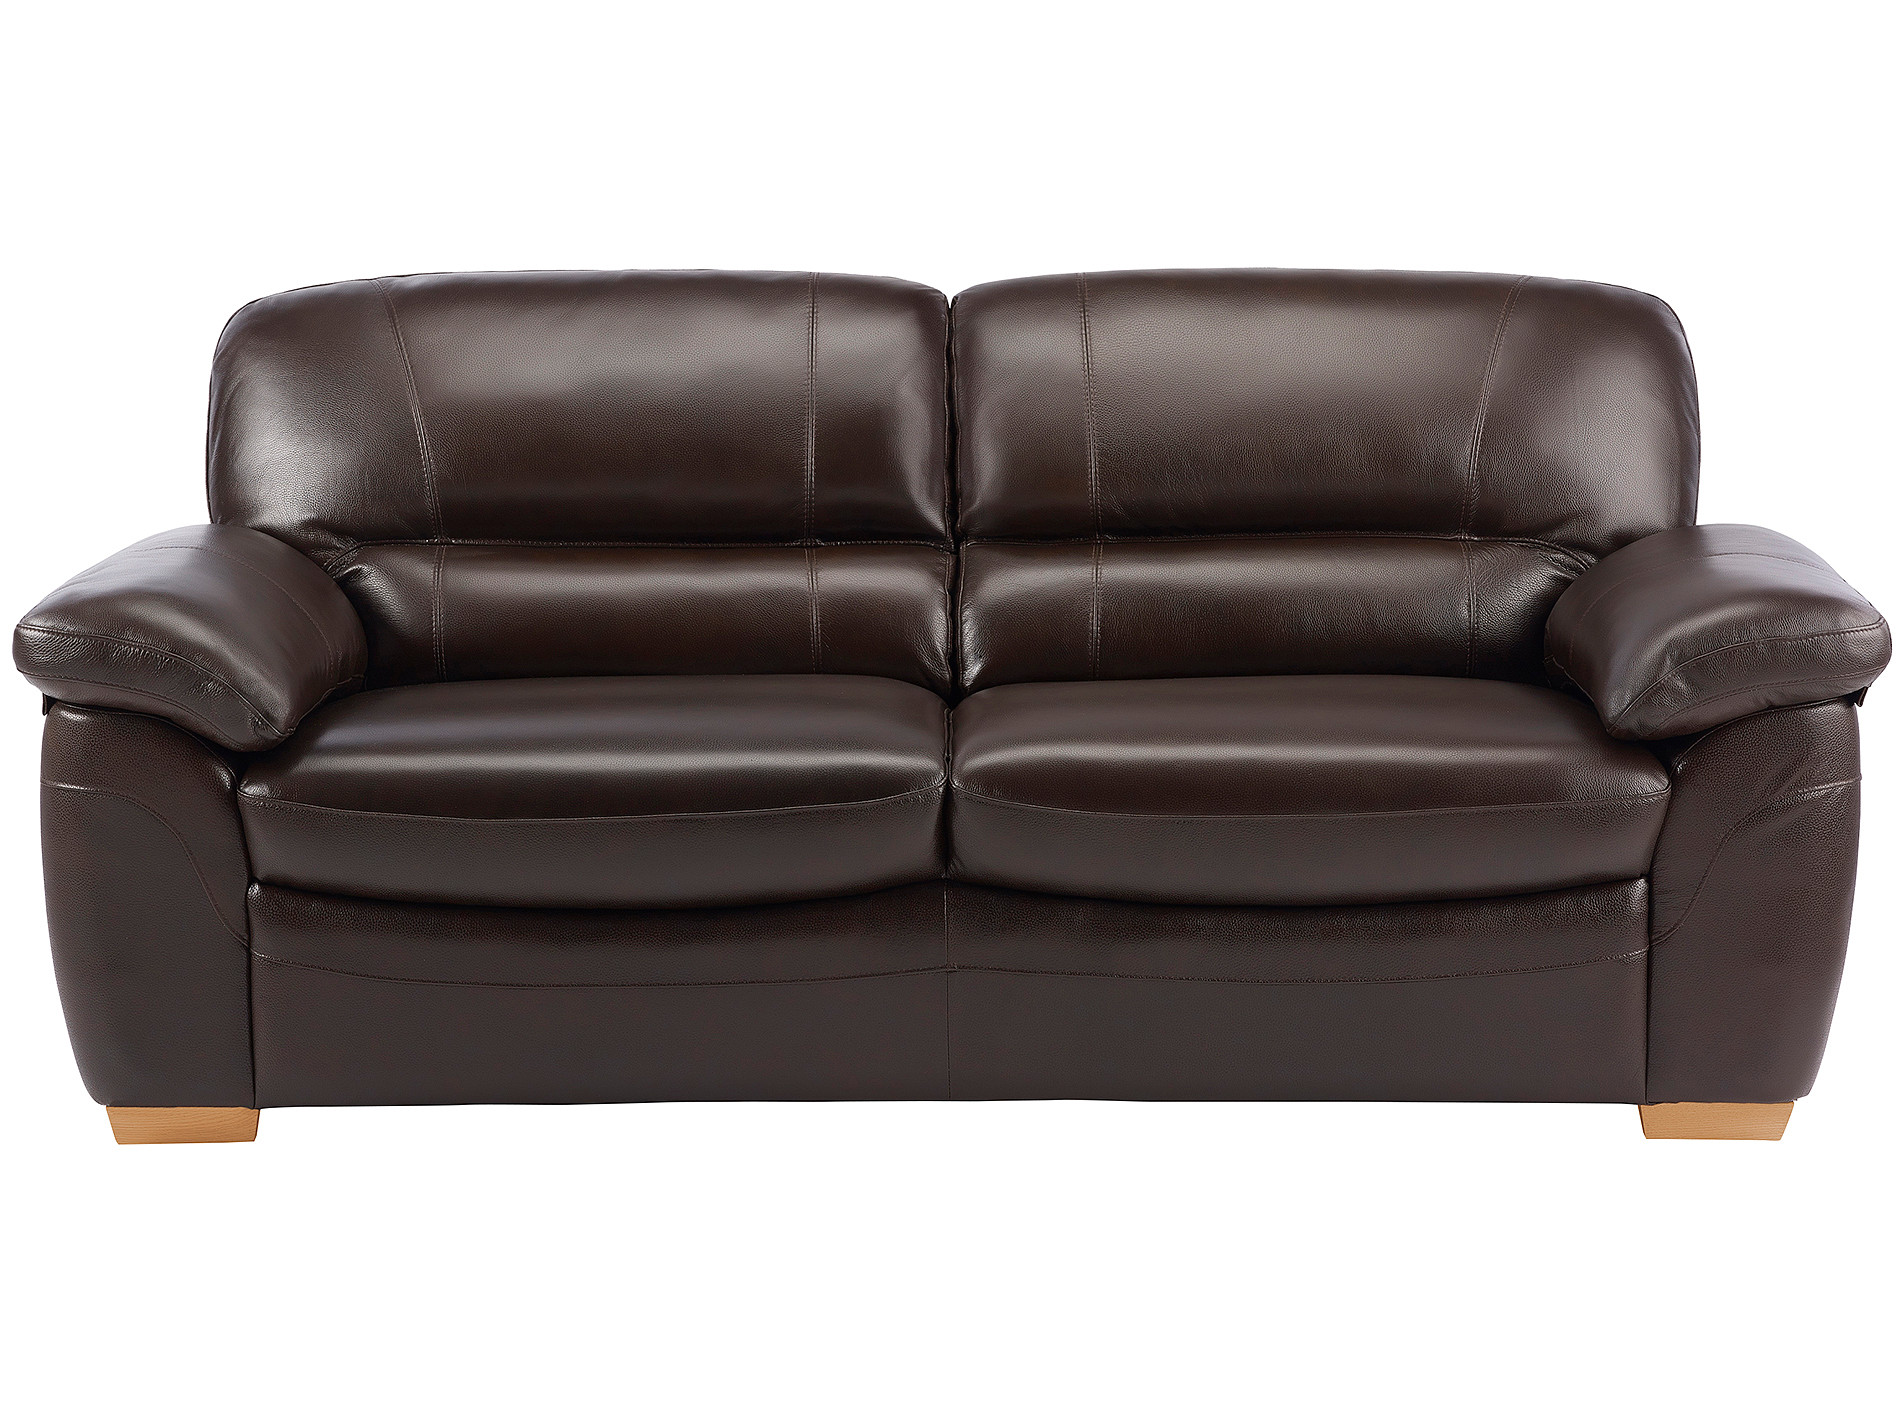 Factory sofas direct uk for Factory sofas